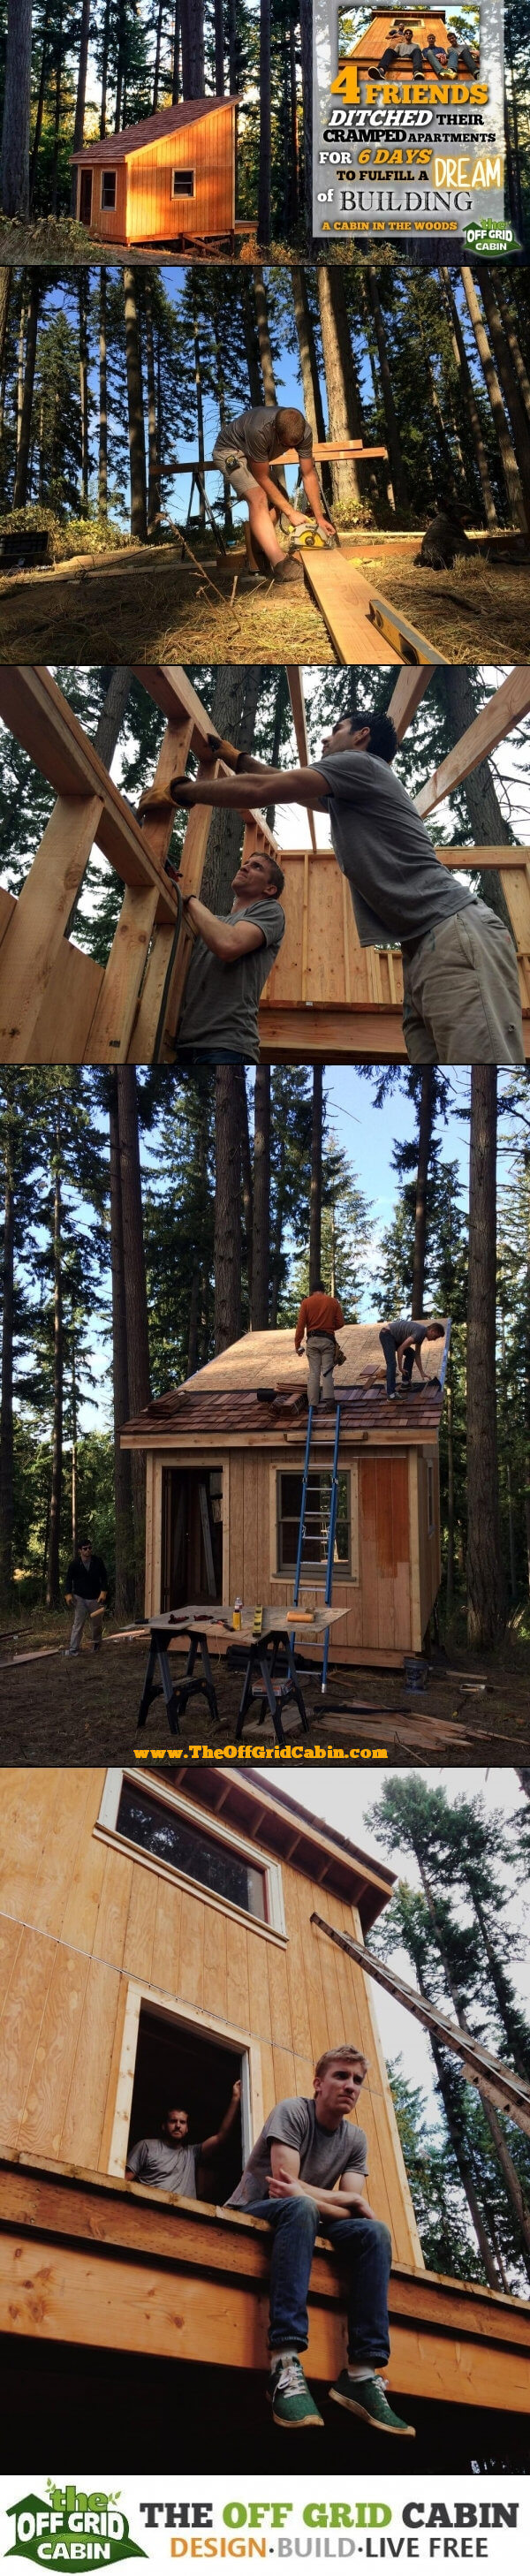 The 6 Day Cabin Build Pinterest Image